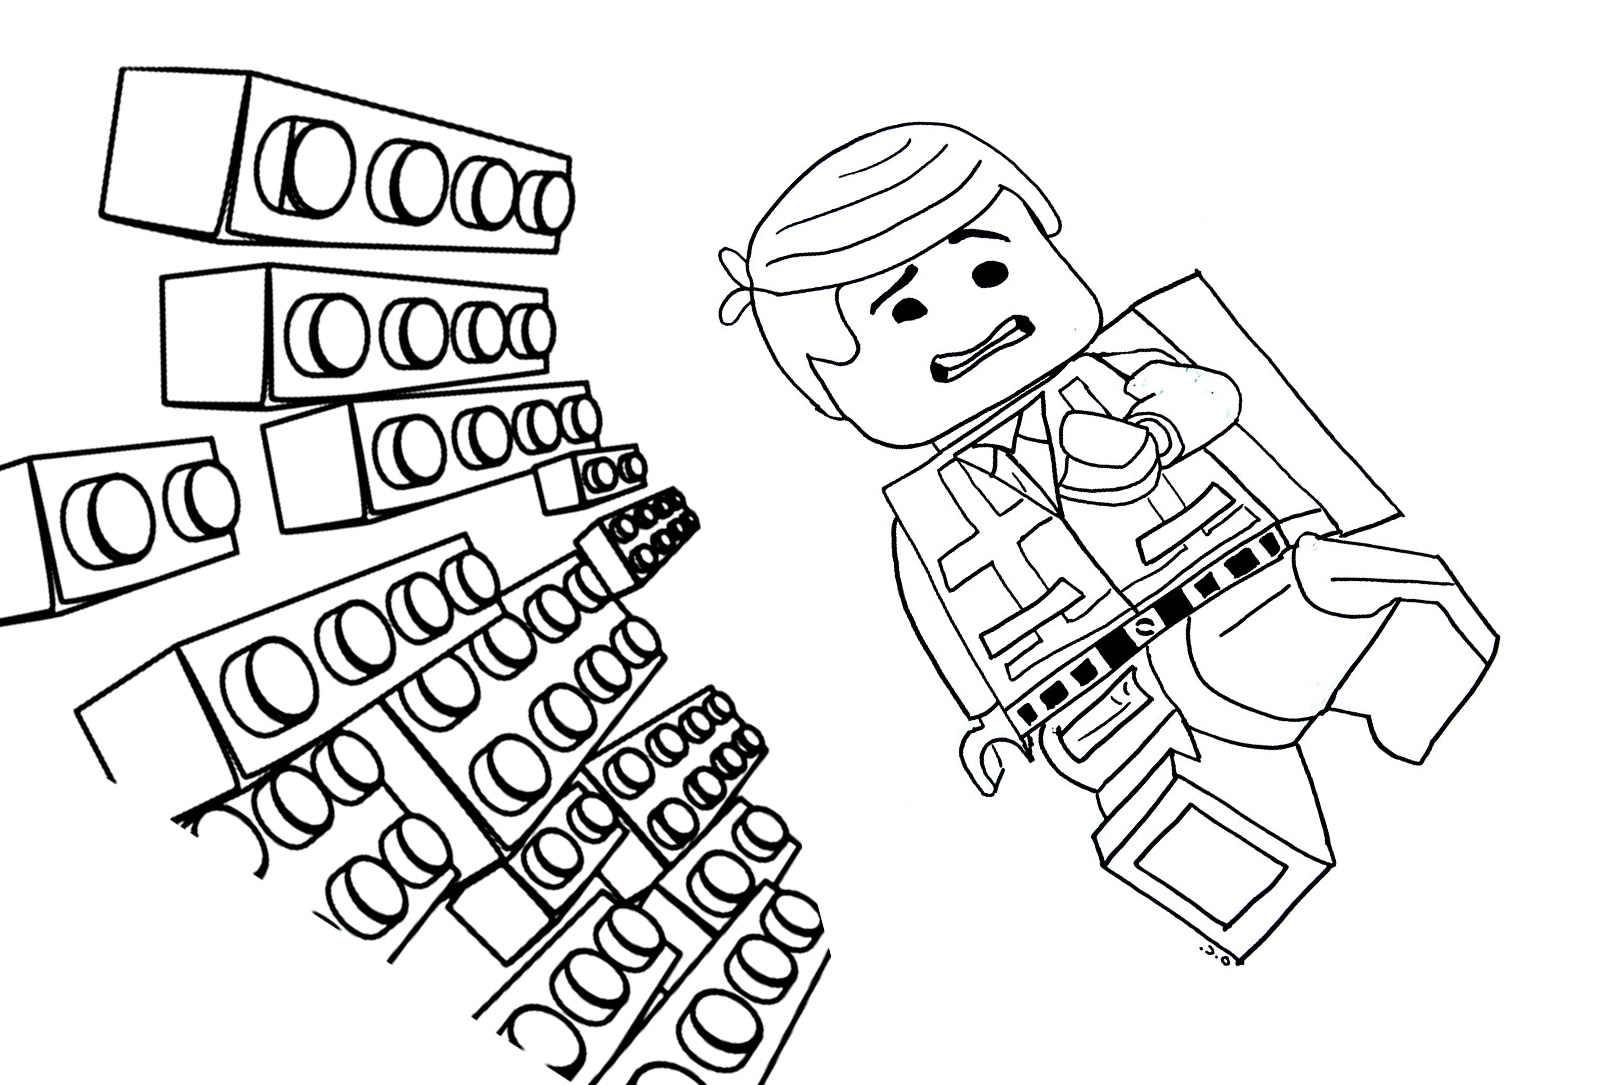 Lego The Big Adventure Free To Color For Kids